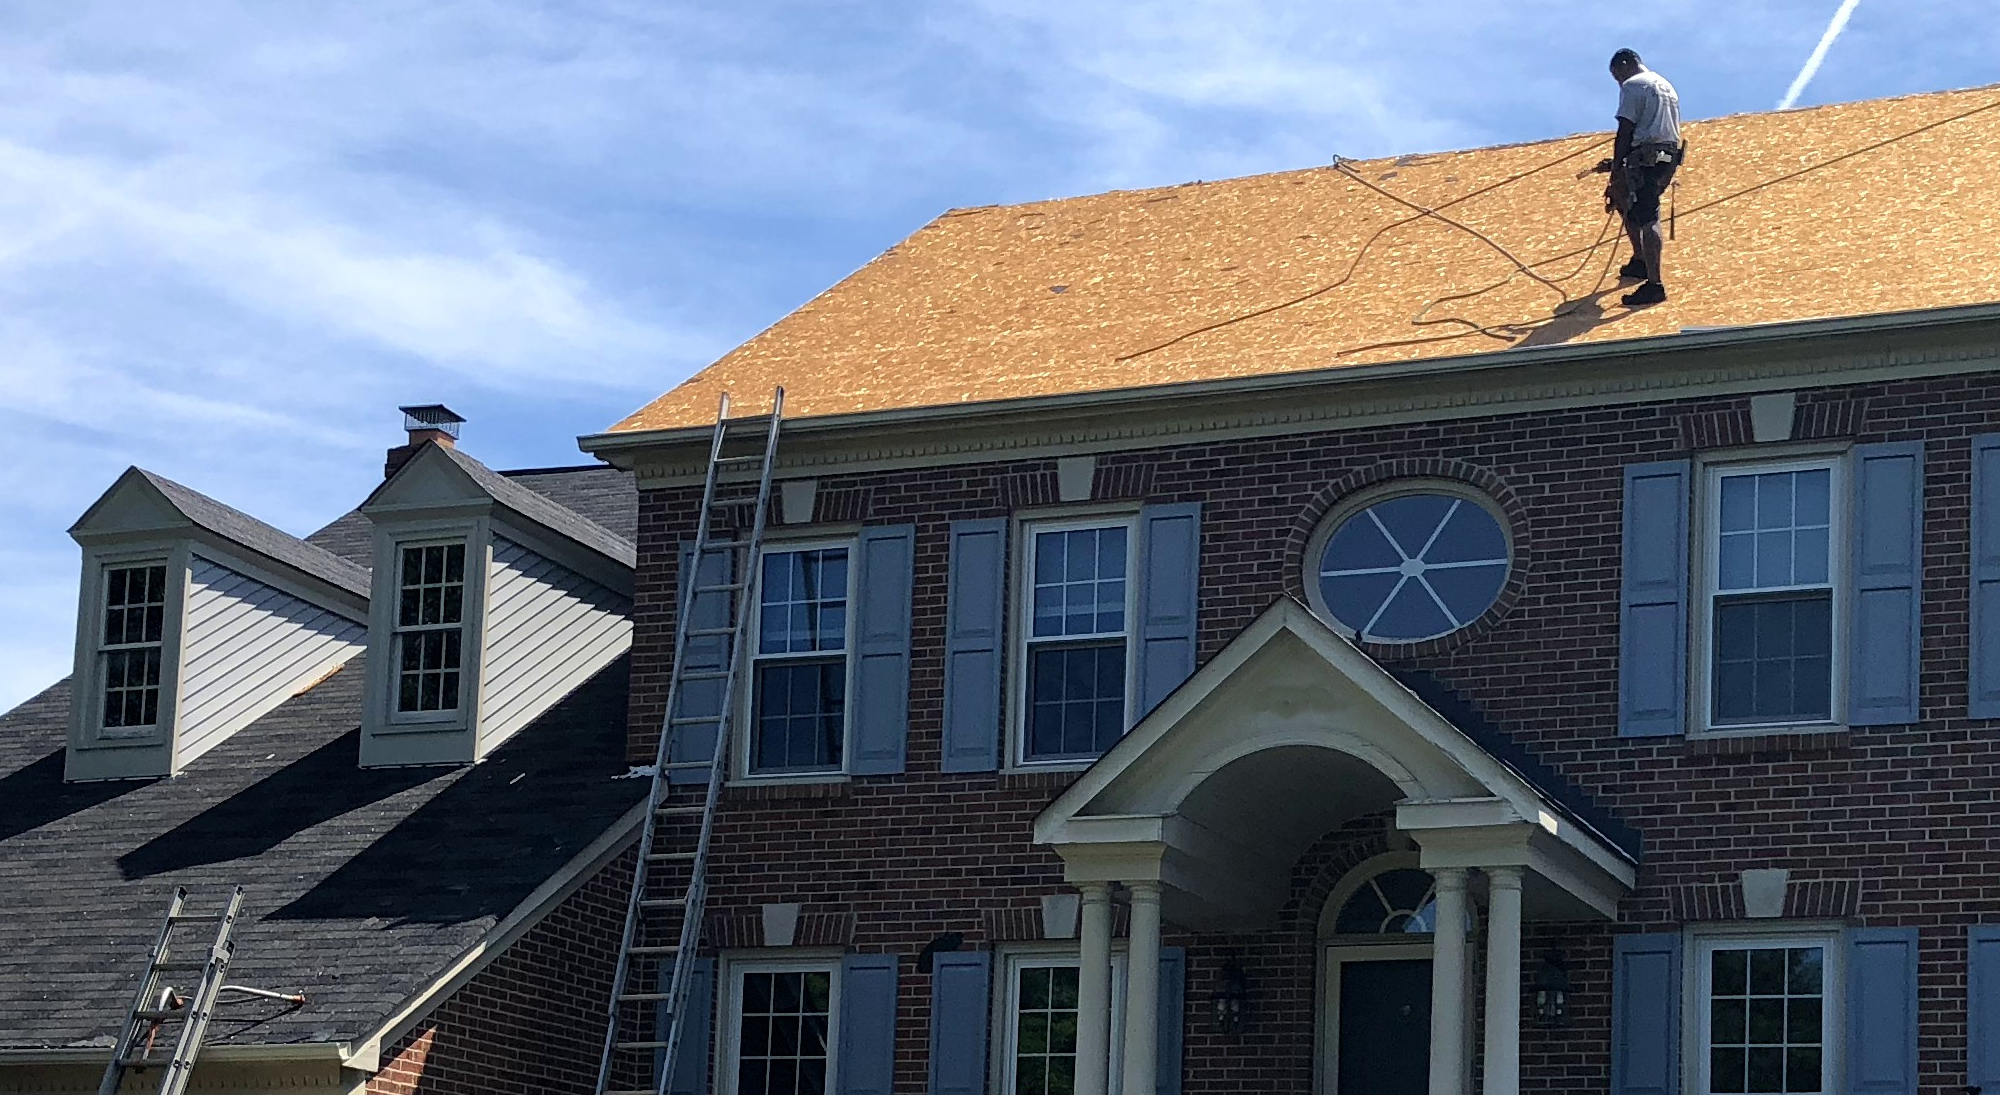 Oakland Mills Roofers Repair and Replace